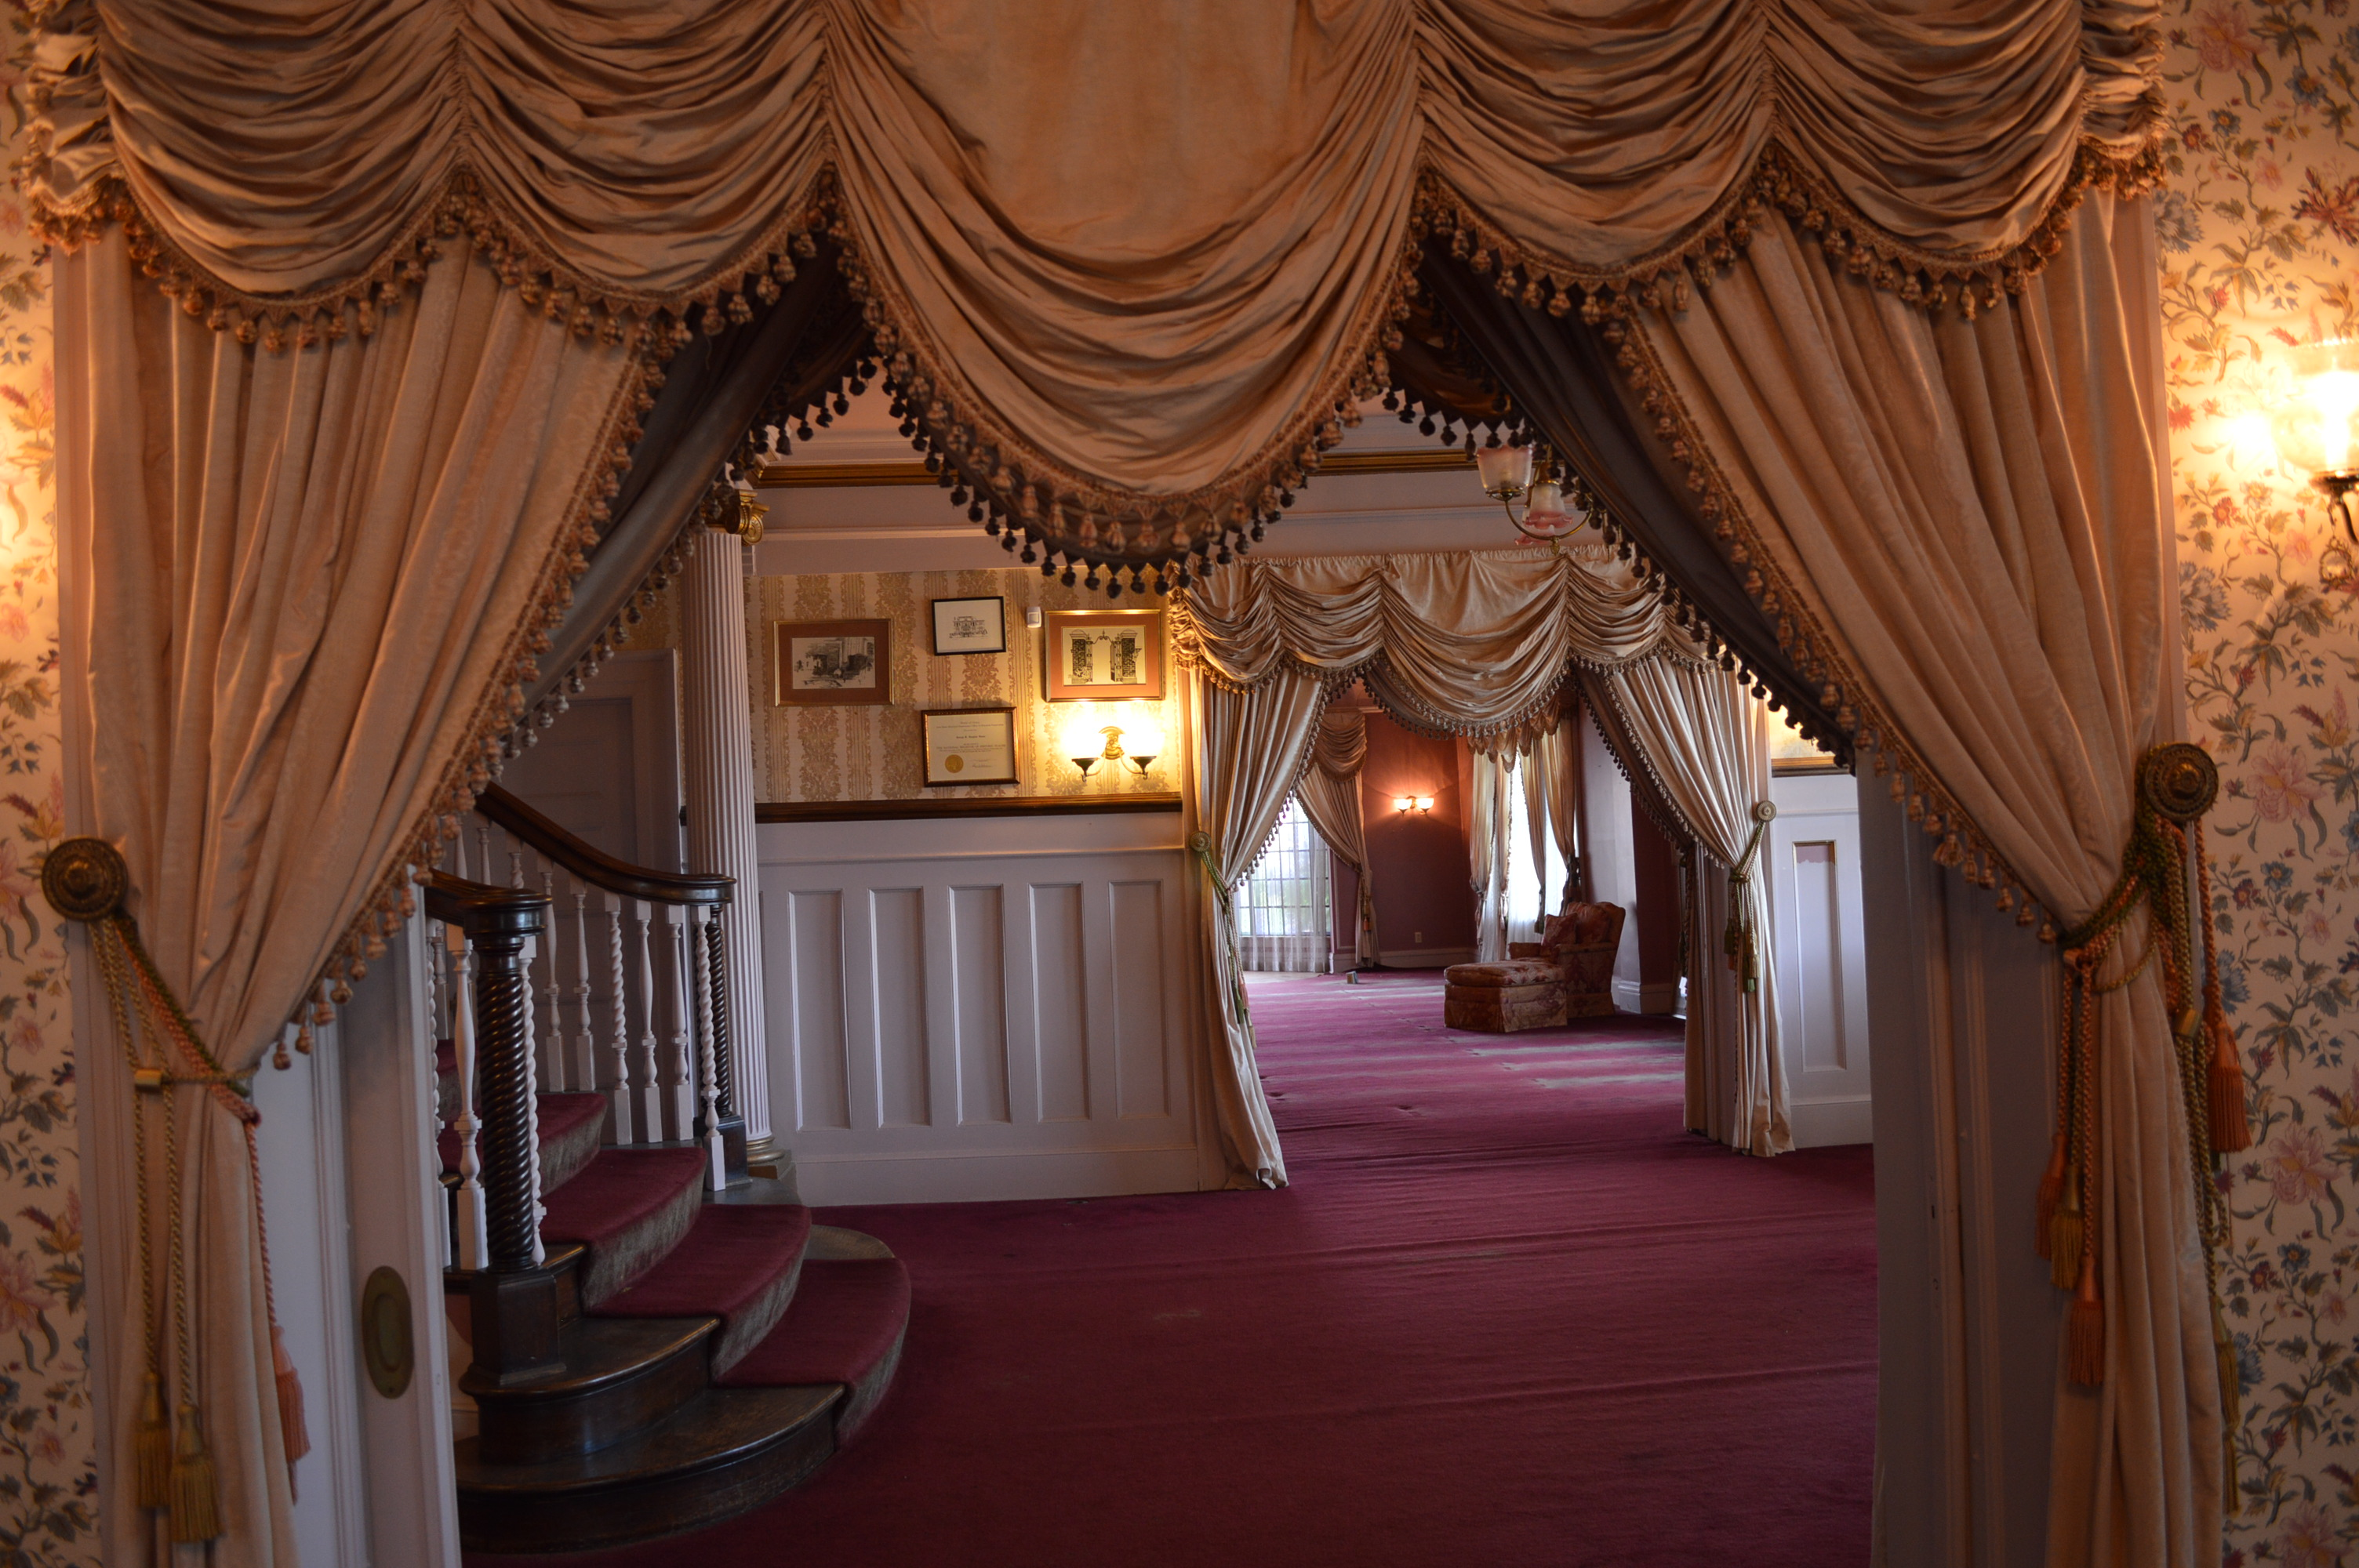 Plush Curtains Are Among The Victorian Style Decor In The George B. Douglas  Mansion